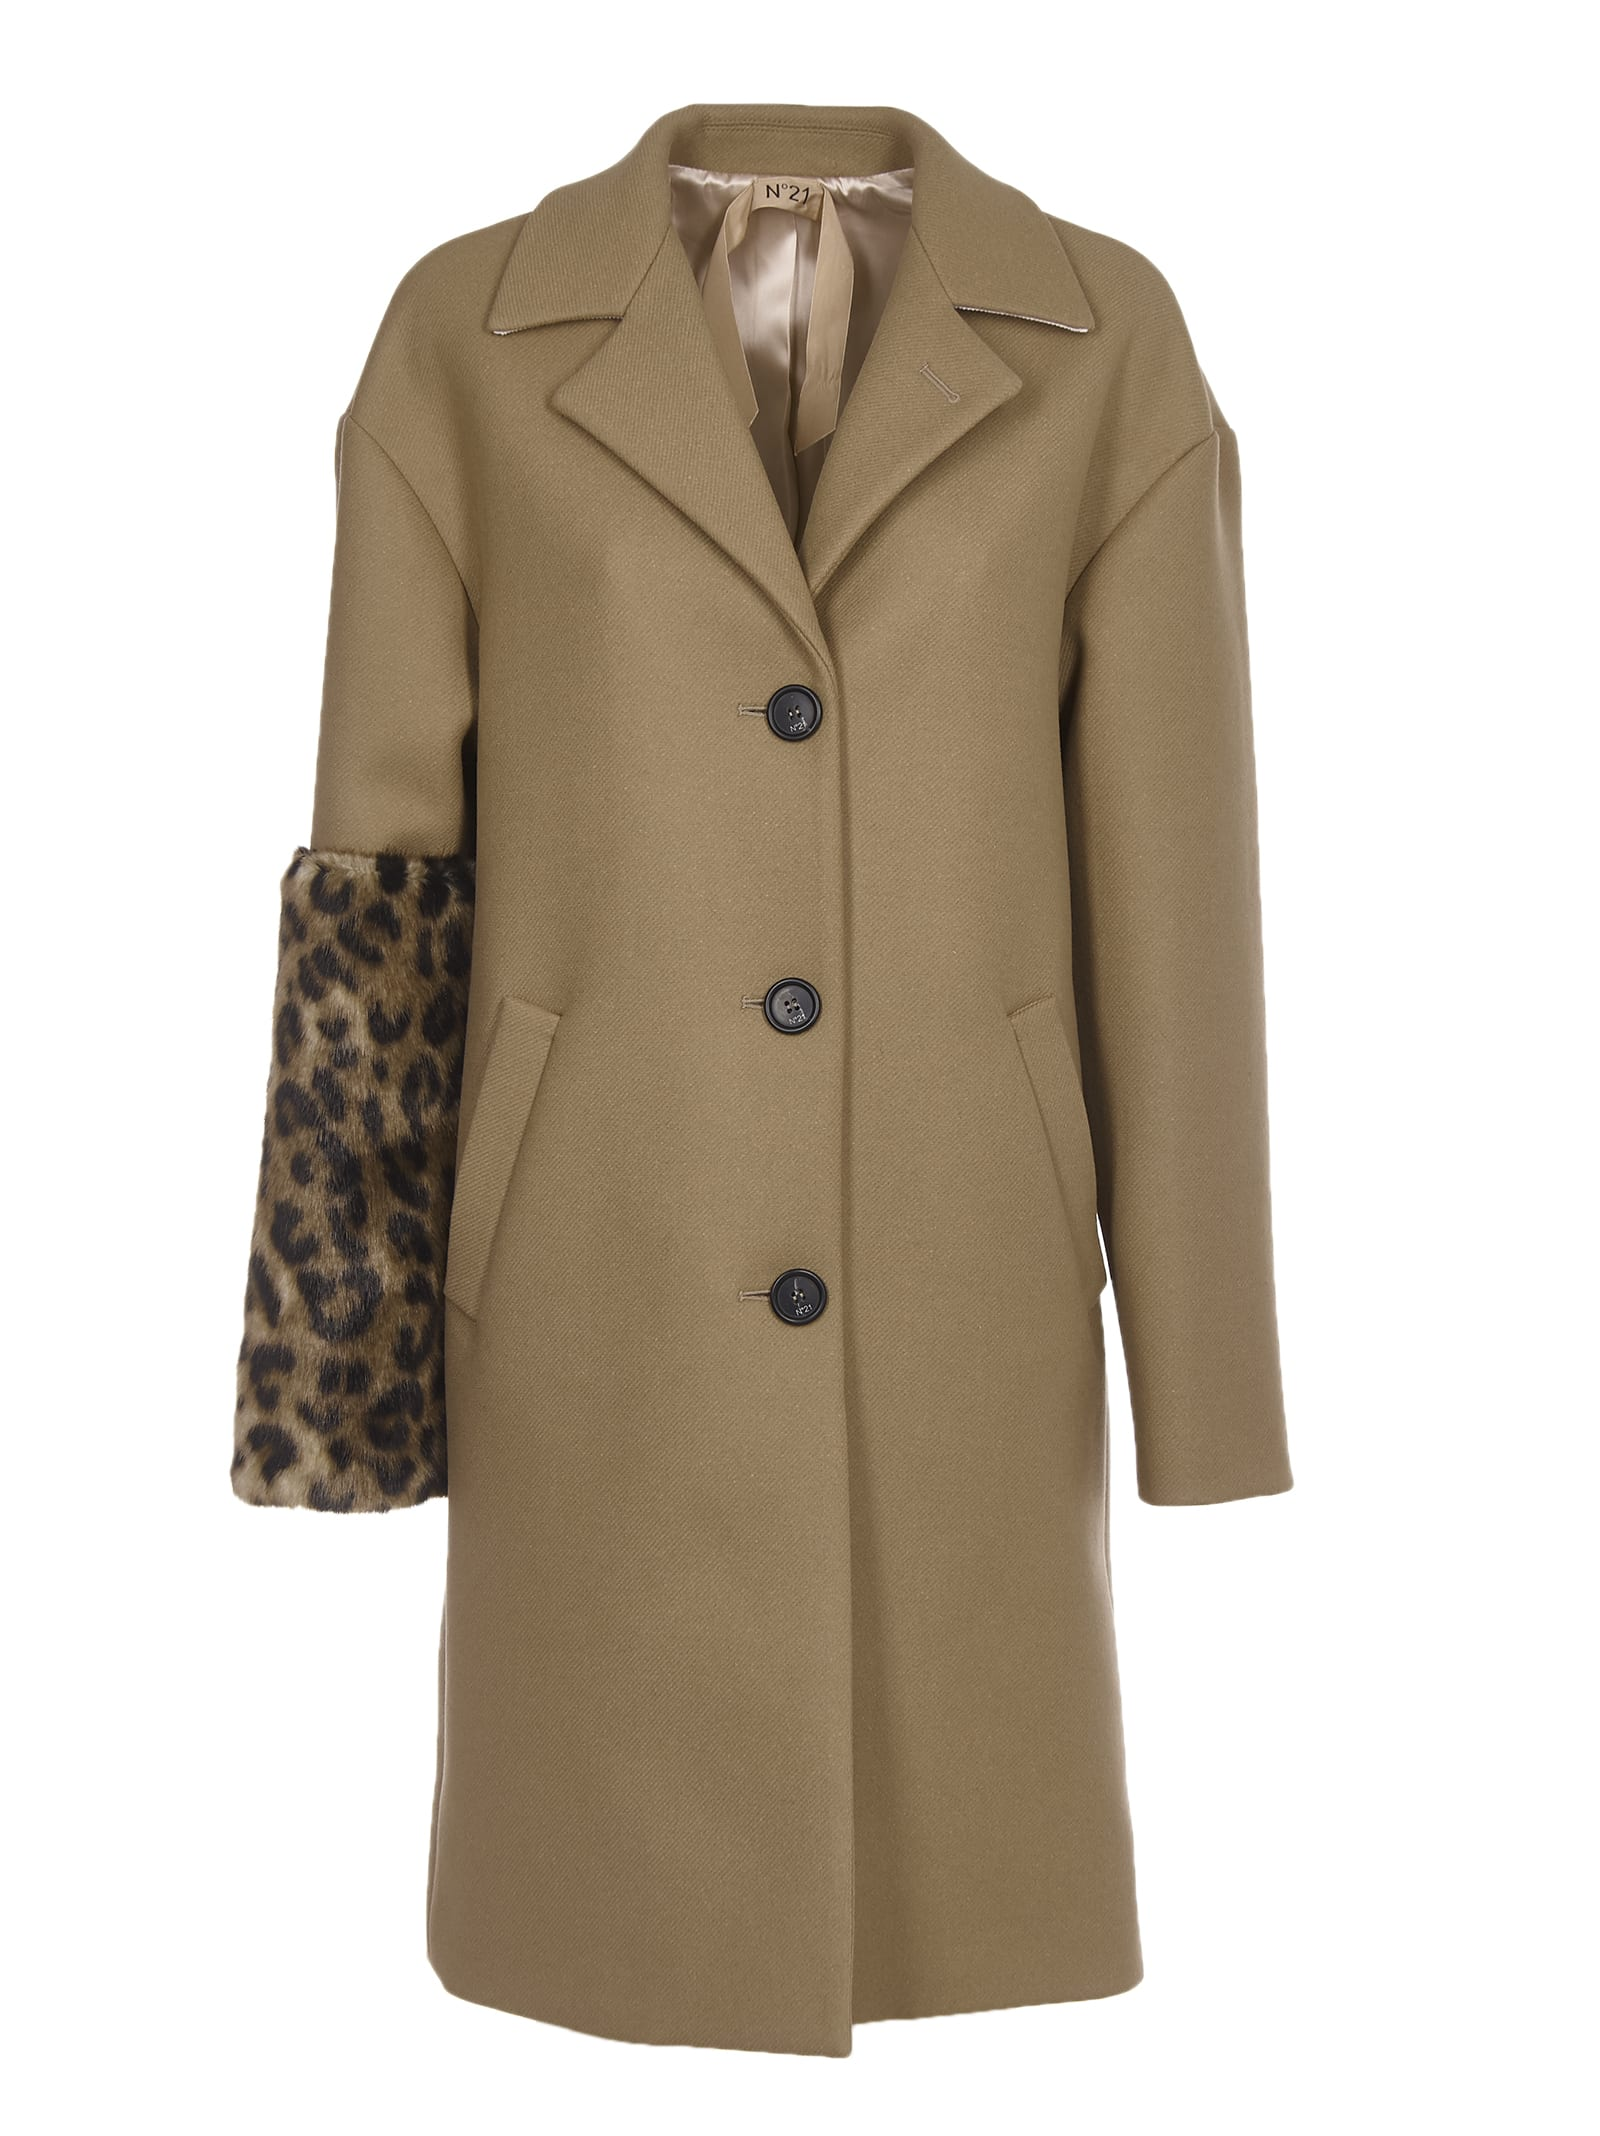 N.21 Camel Coat With Leopard Faux Fur